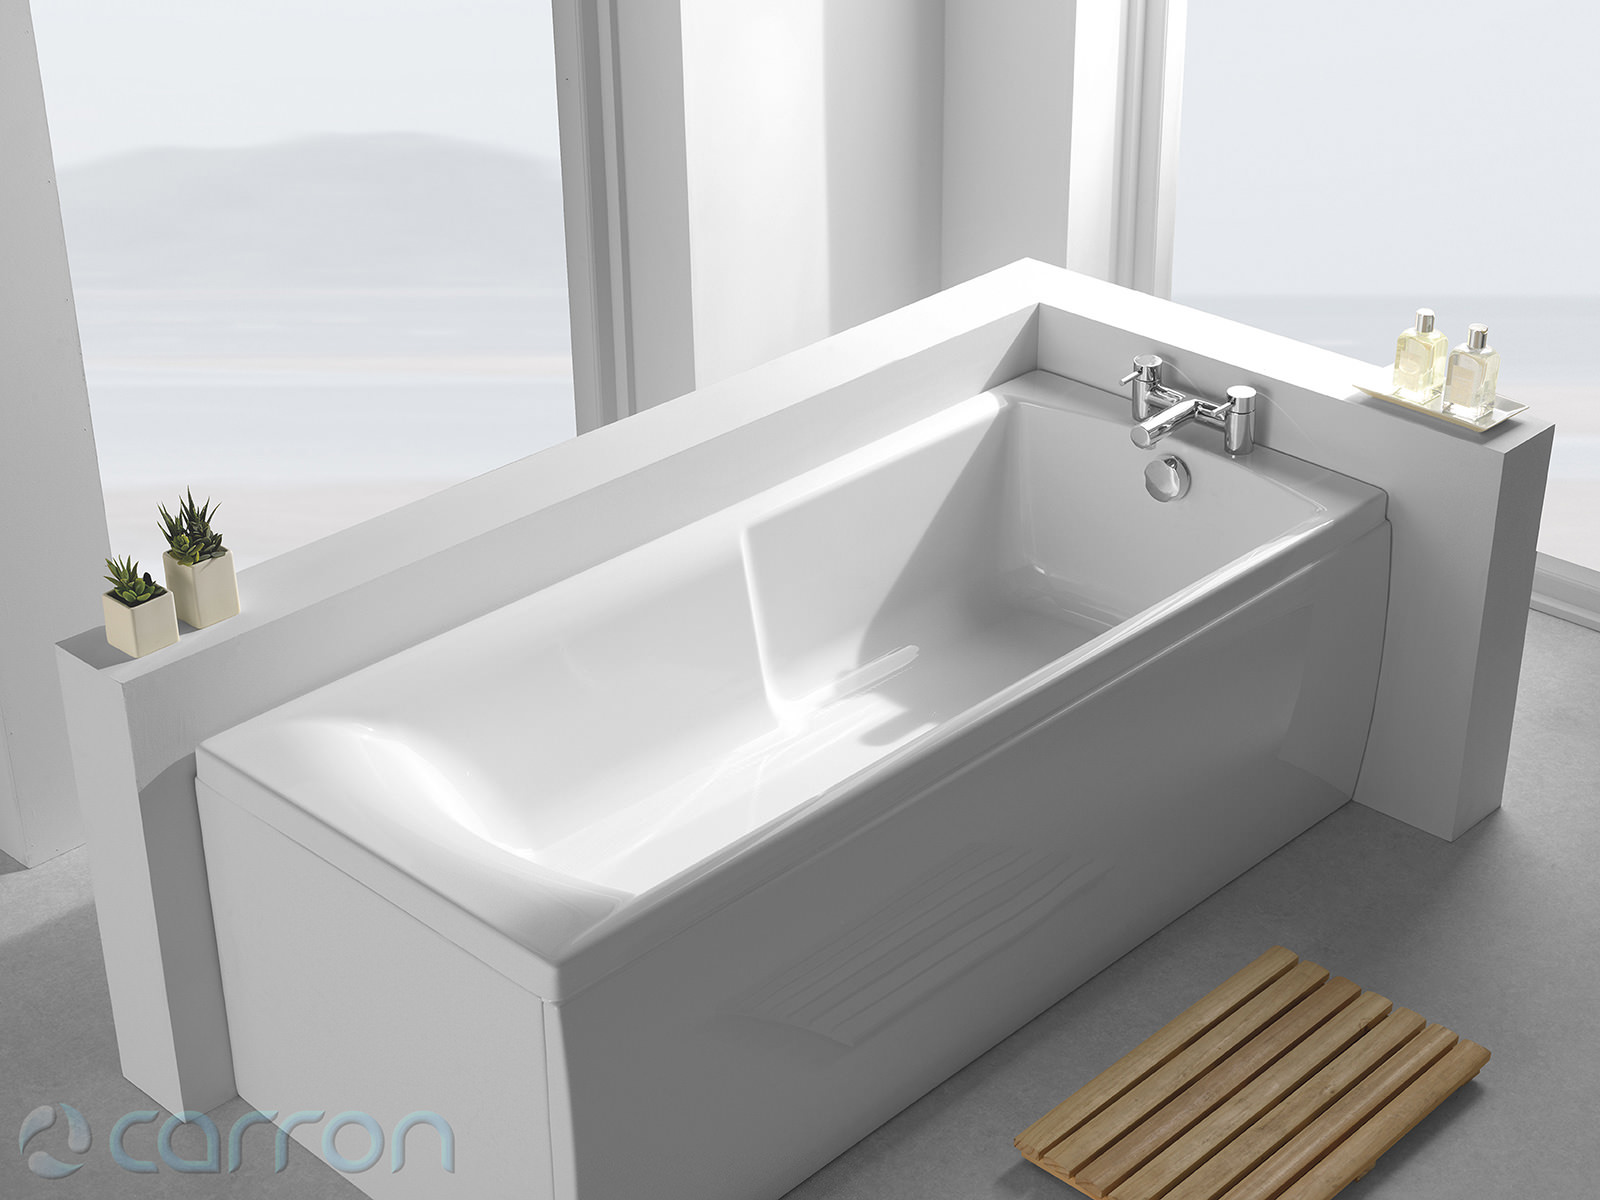 Begehbare Badewannen Carron Matrix 5mm Acrylic Single Ended Bath 1500 X 700mm